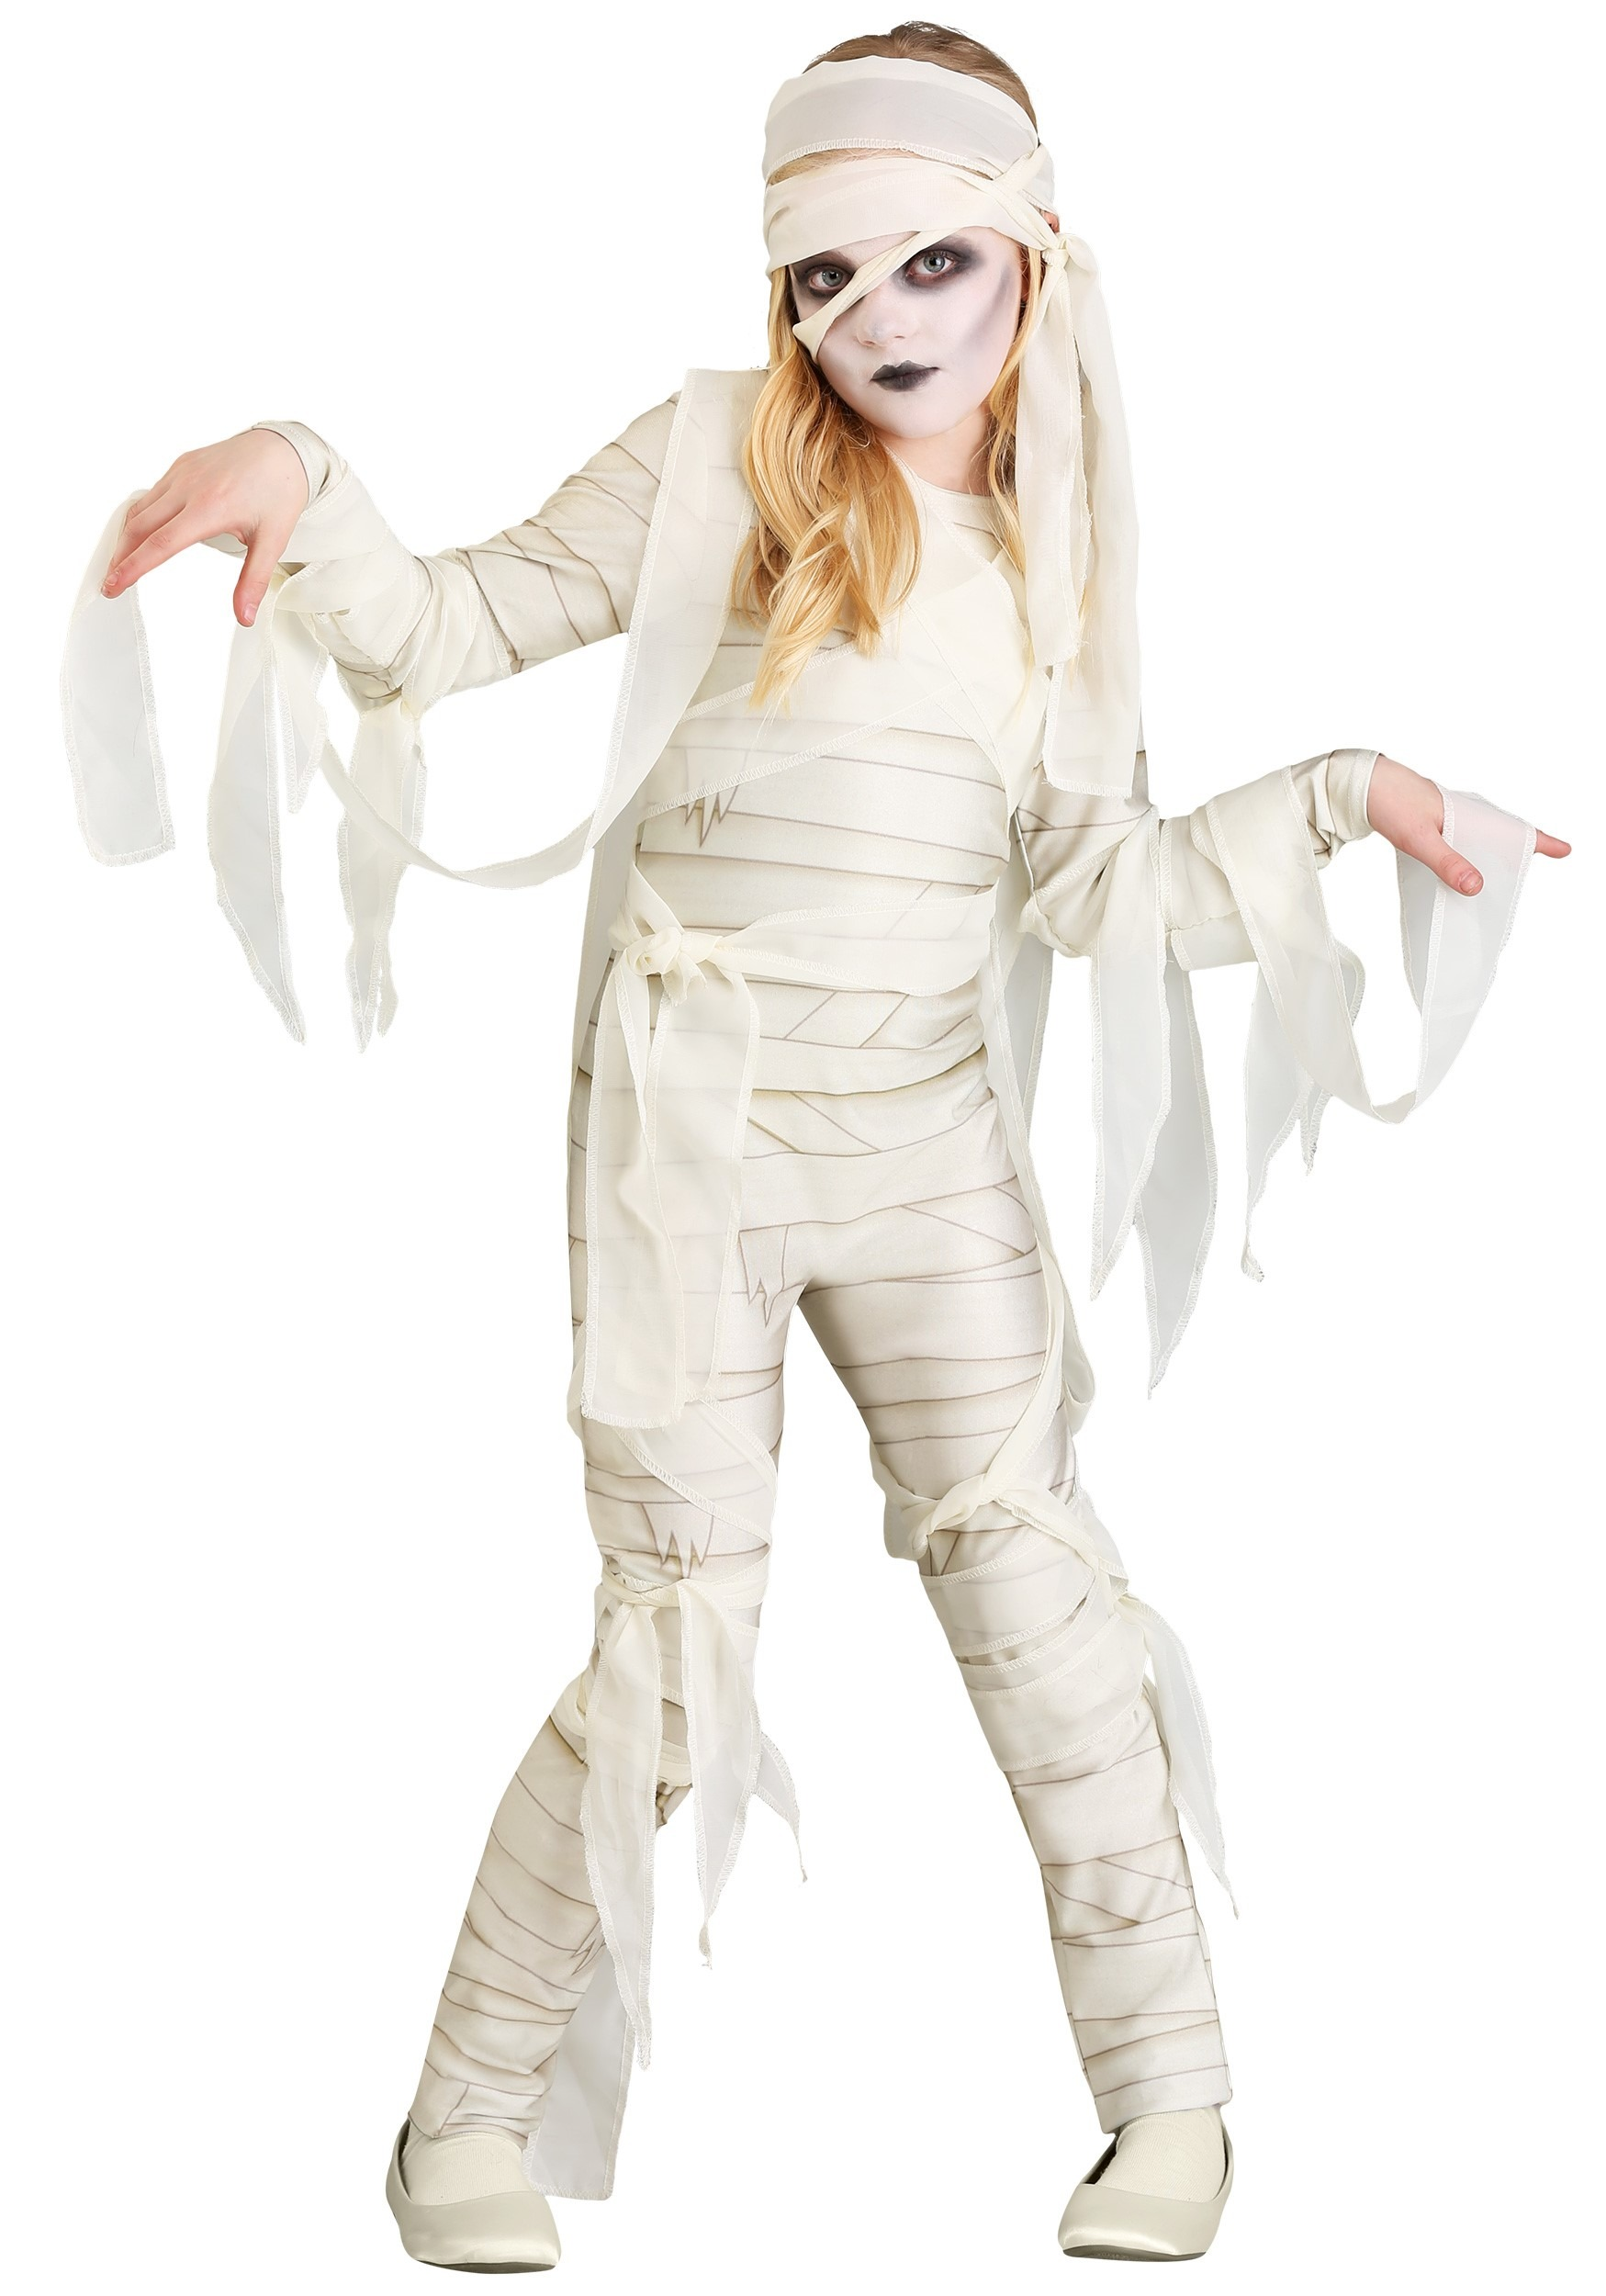 Under Wraps Mummy Costume for Girls